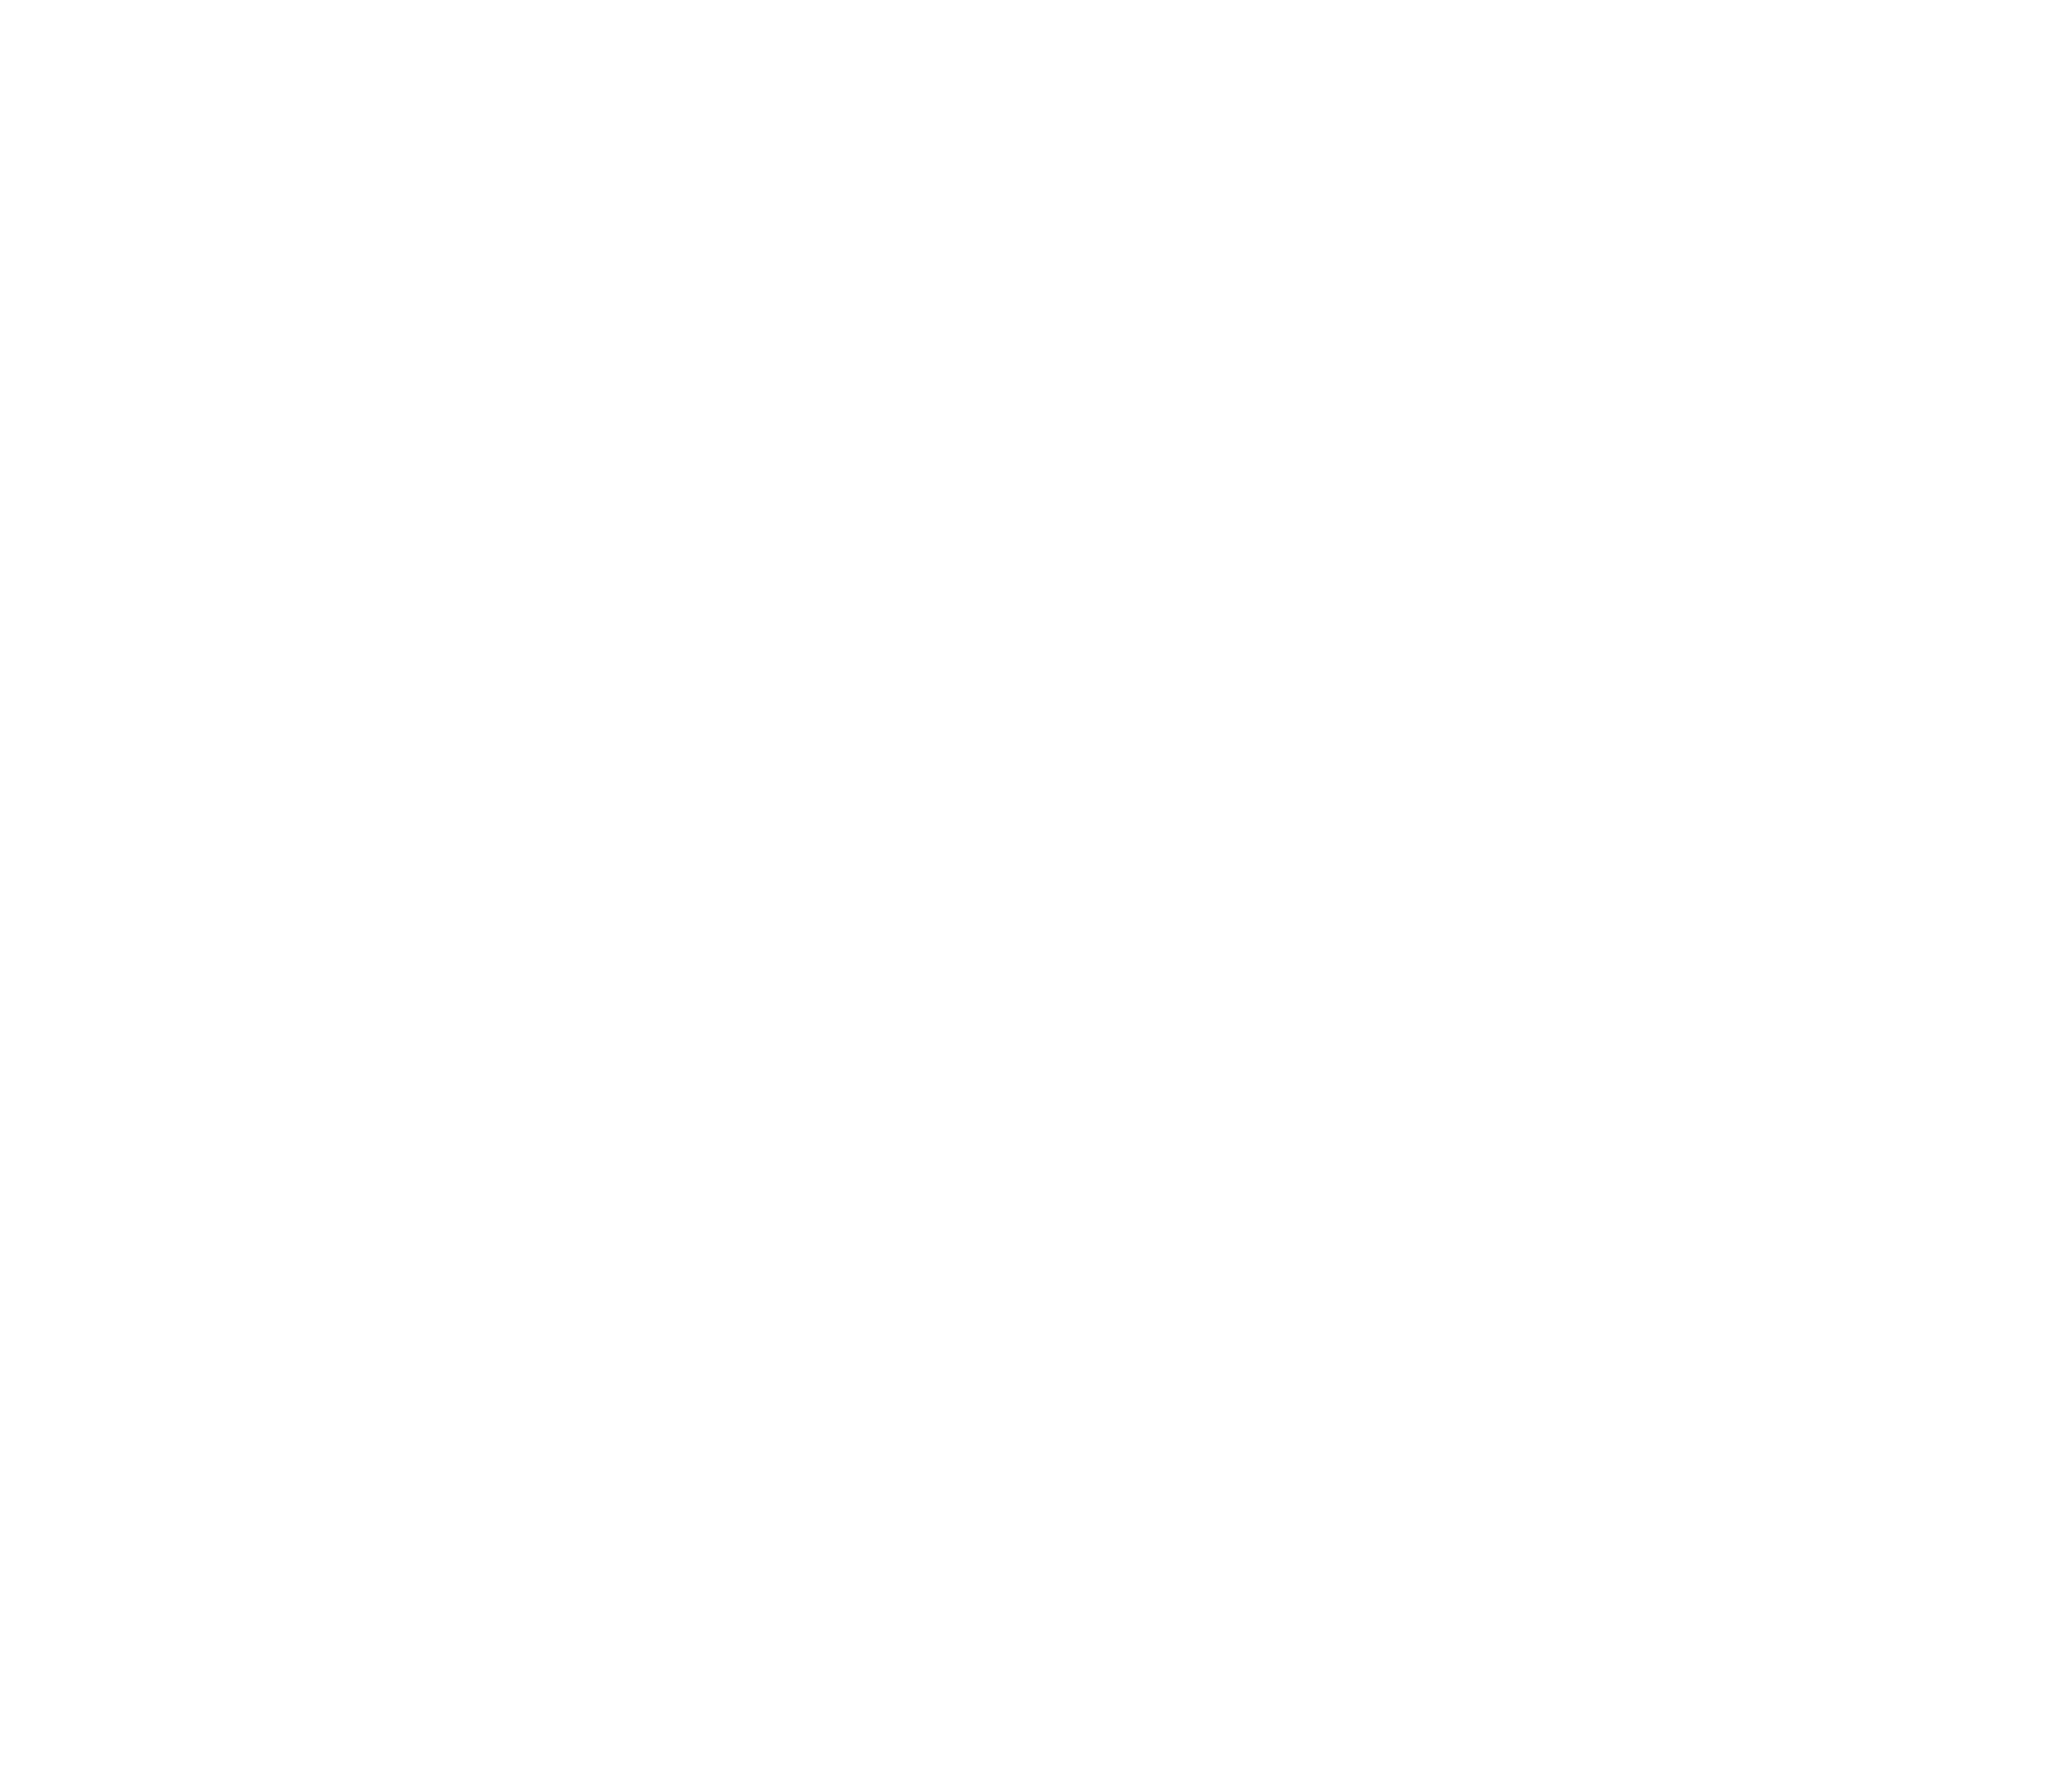 SOULFUL CONNECTING